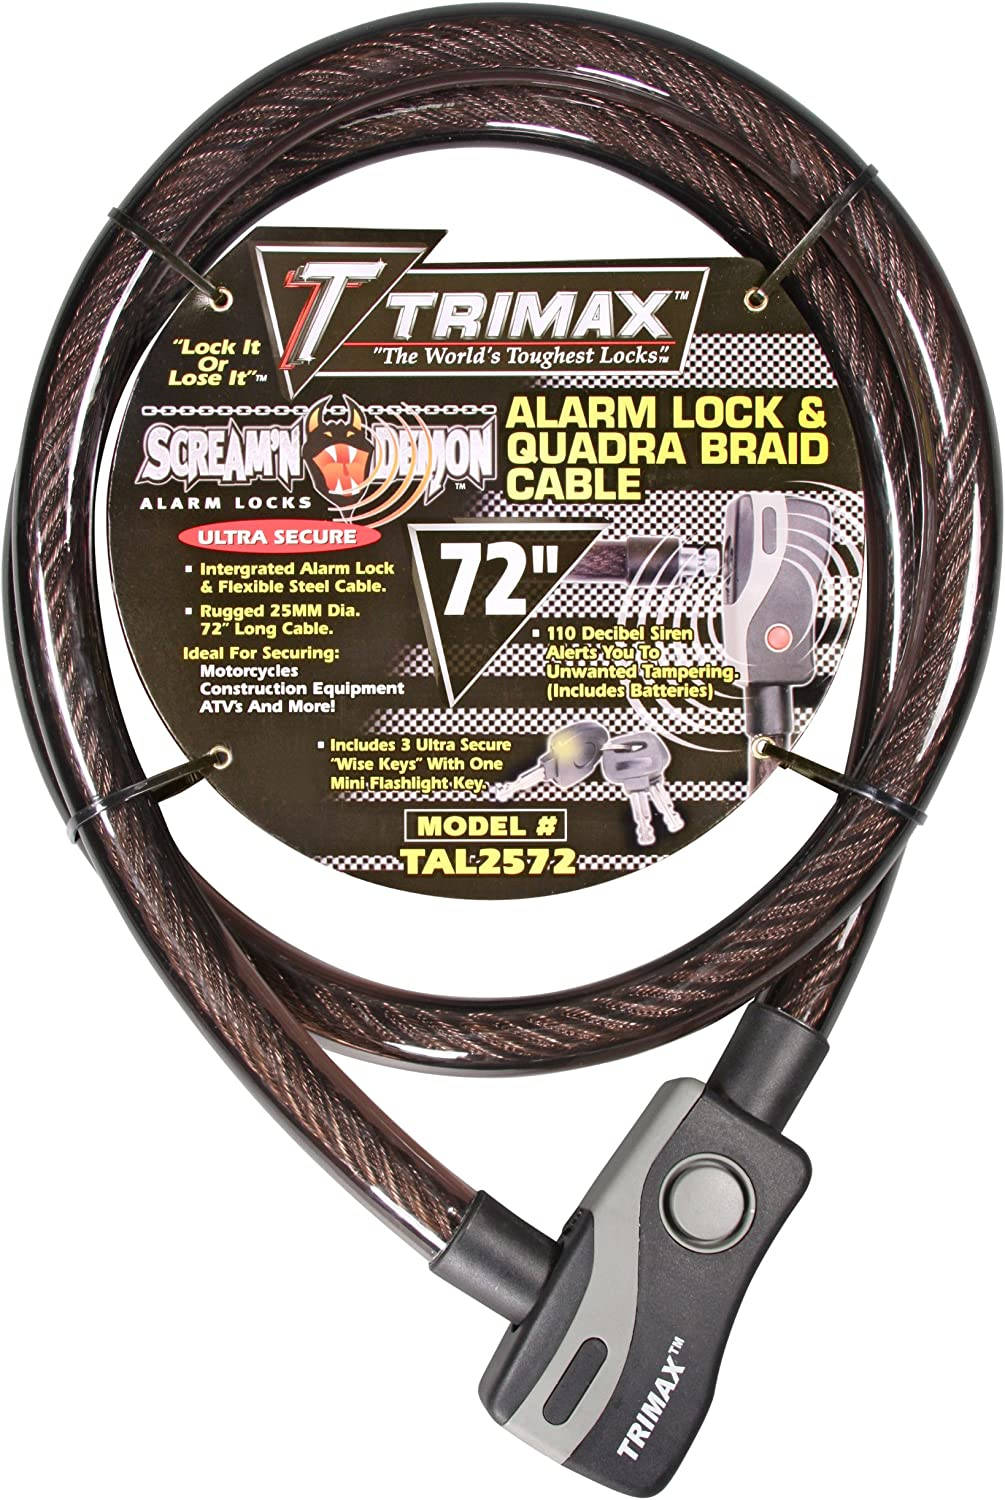 Trimax Trimaflex Coiled Led Comb Lock with Quick Release Bracket 6 L X 12Mm TRL126 Card Packaging